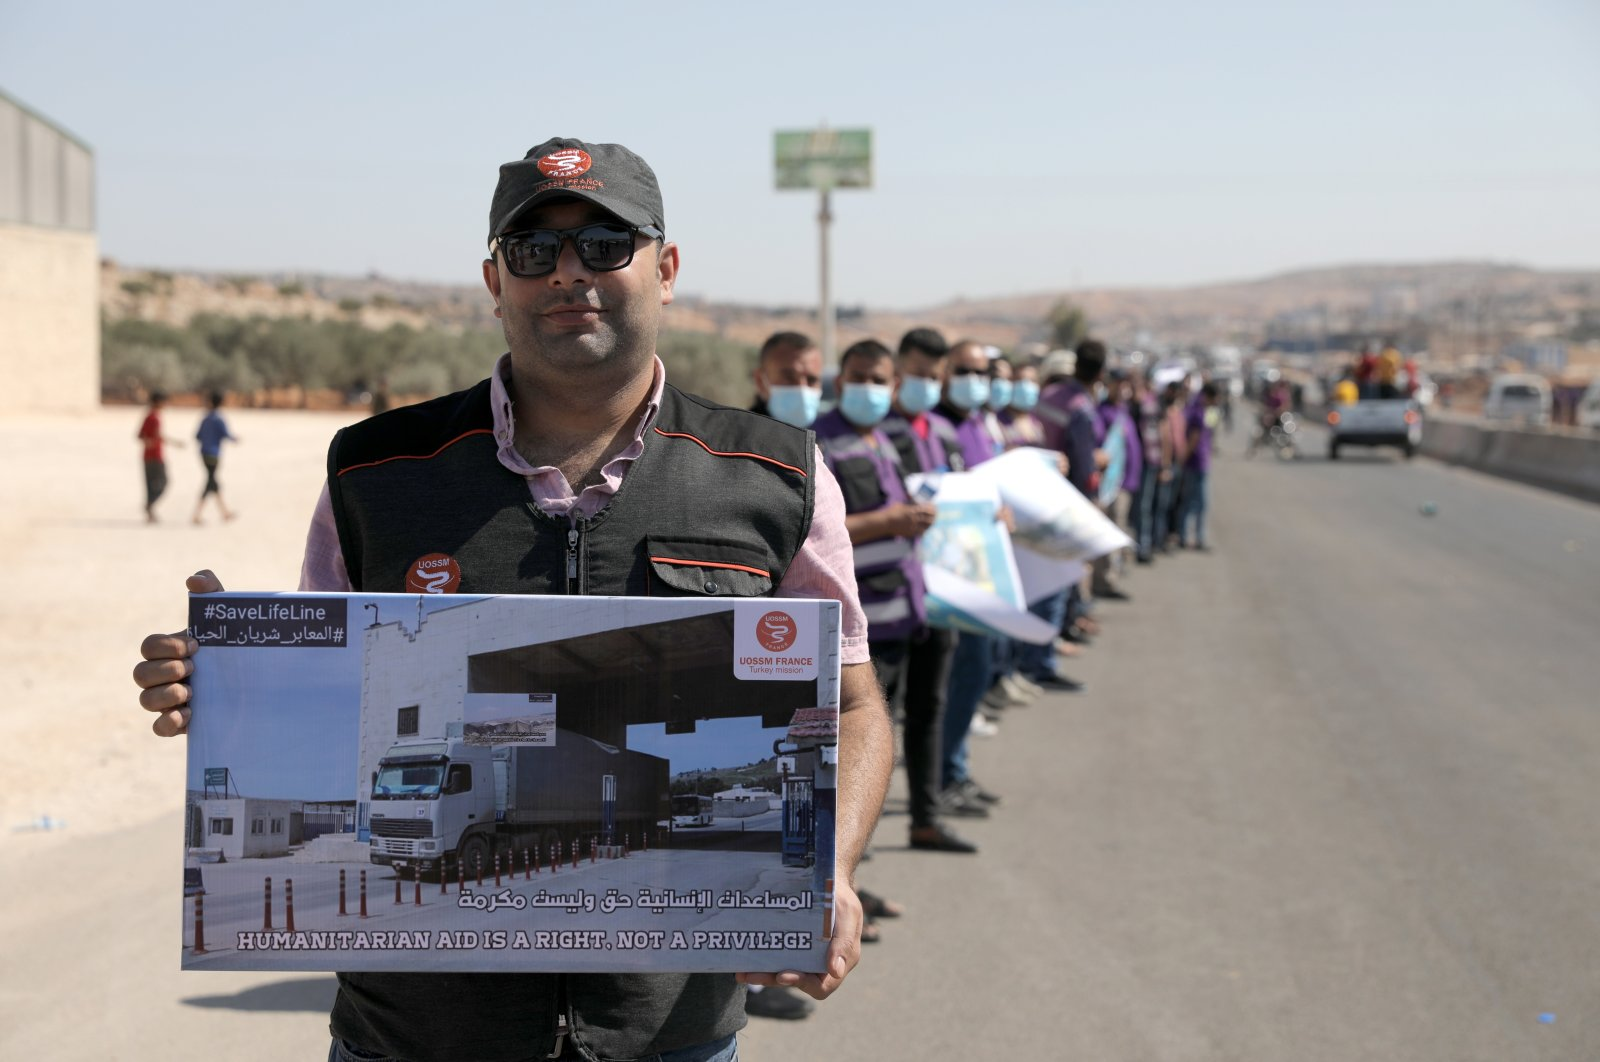 Activists and workers from civil society, humanitarian and medical aid organizations hold banners as they form a human chain calling on the international community to maintain the cross-border humanitarian corridor, at the Bab Al-Hawa border crossing, Idlib, Syria, July 2, 2021. (EPA Photo)